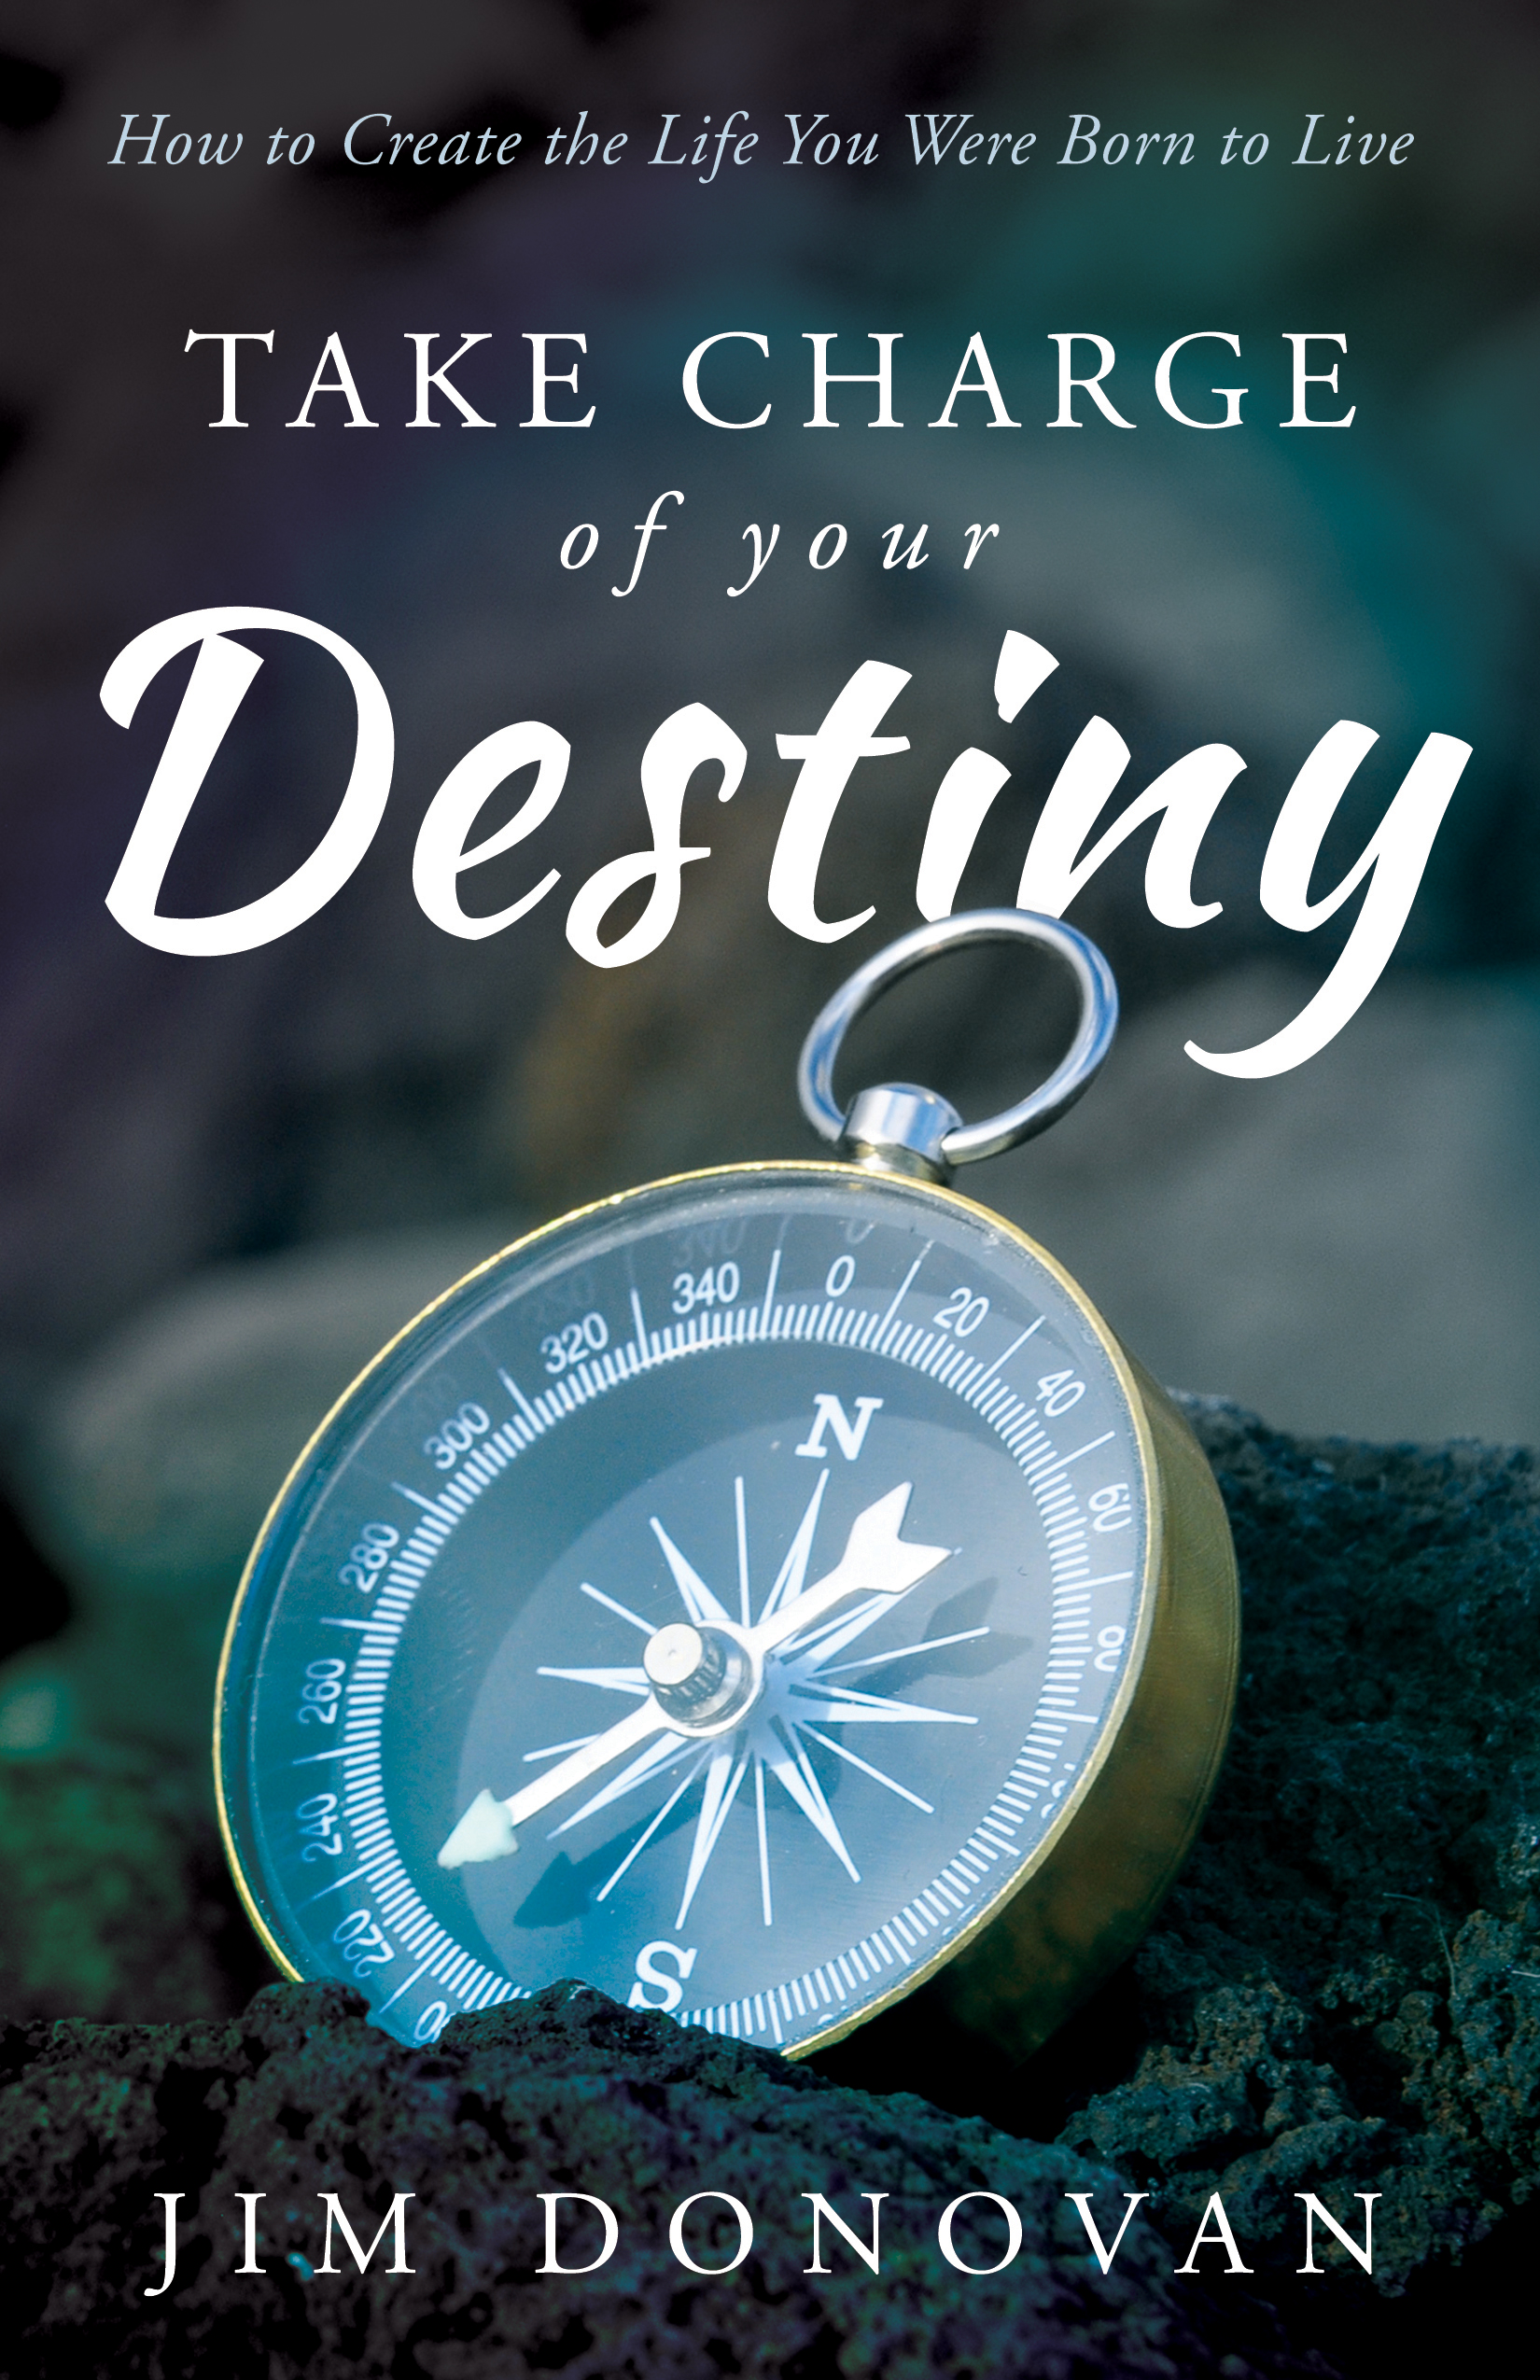 Take Charge of Your Destiny - Jim Donovan